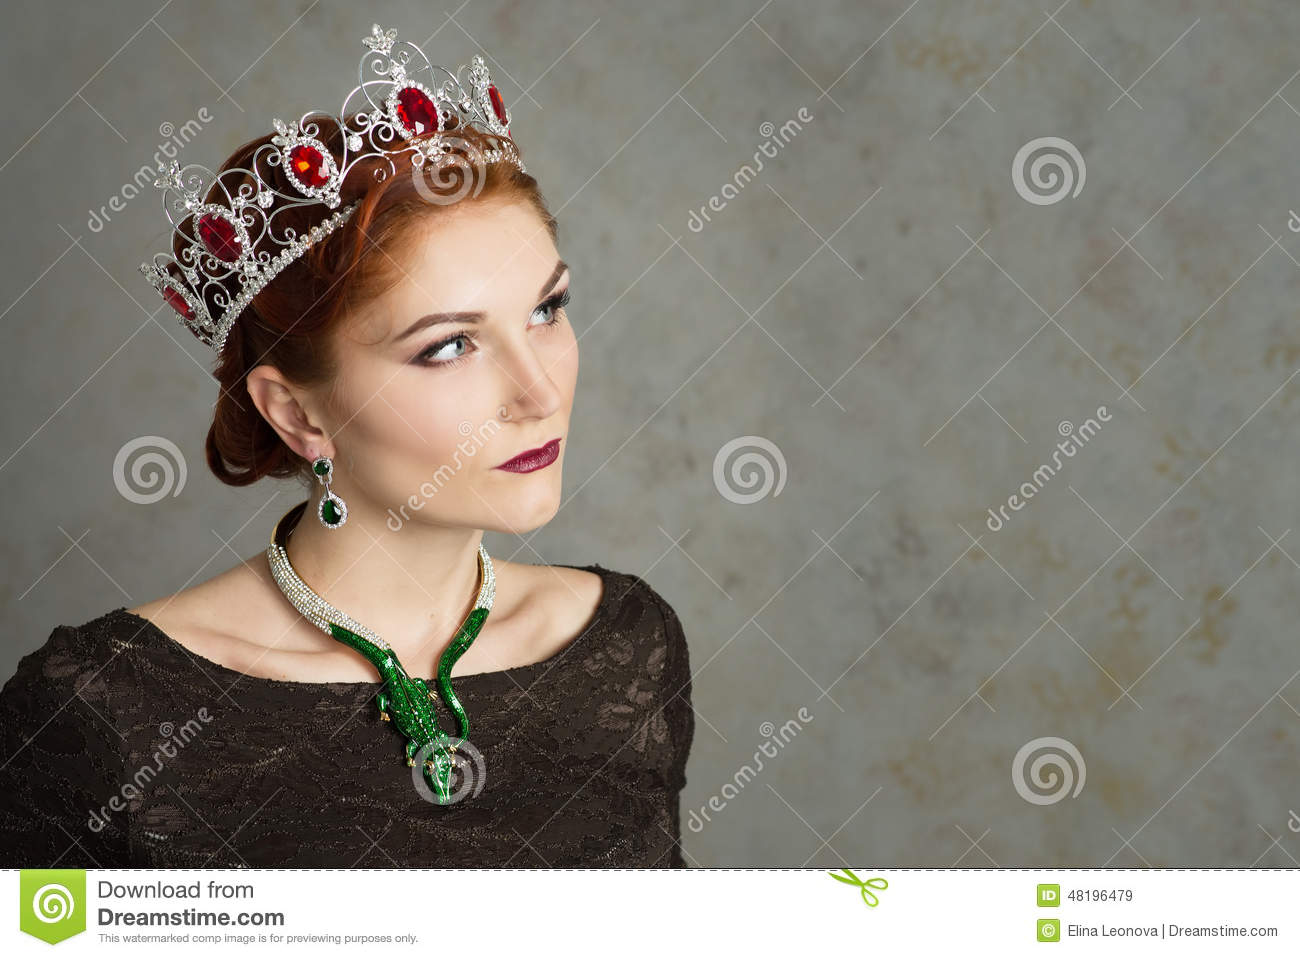 Queen, royalty person with crown. Fashion, elegant woman